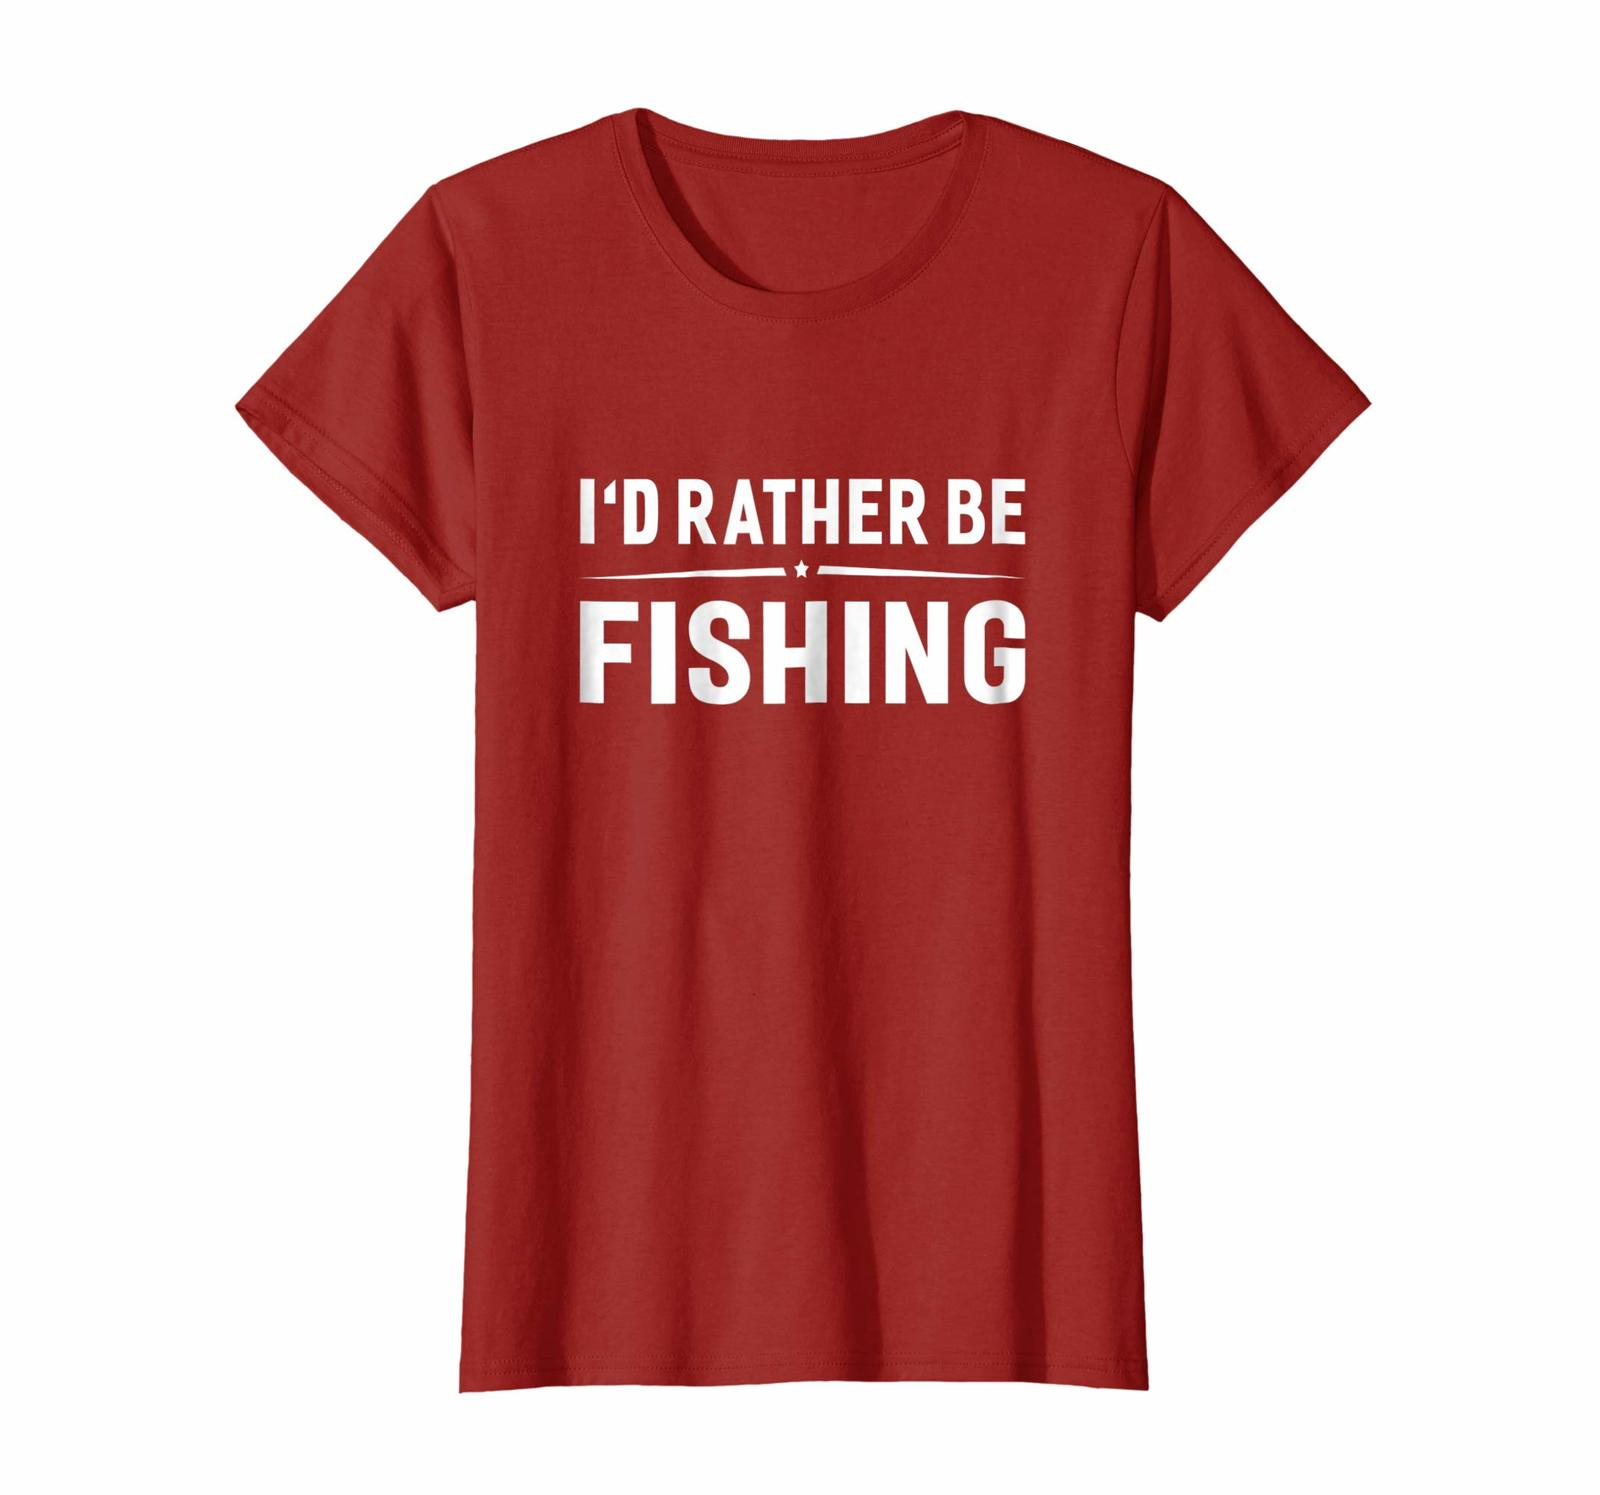 Primary image for New Shirts - I'd Rather Be Fishing Funny Fisherman Hilarious T-shirt Wowen